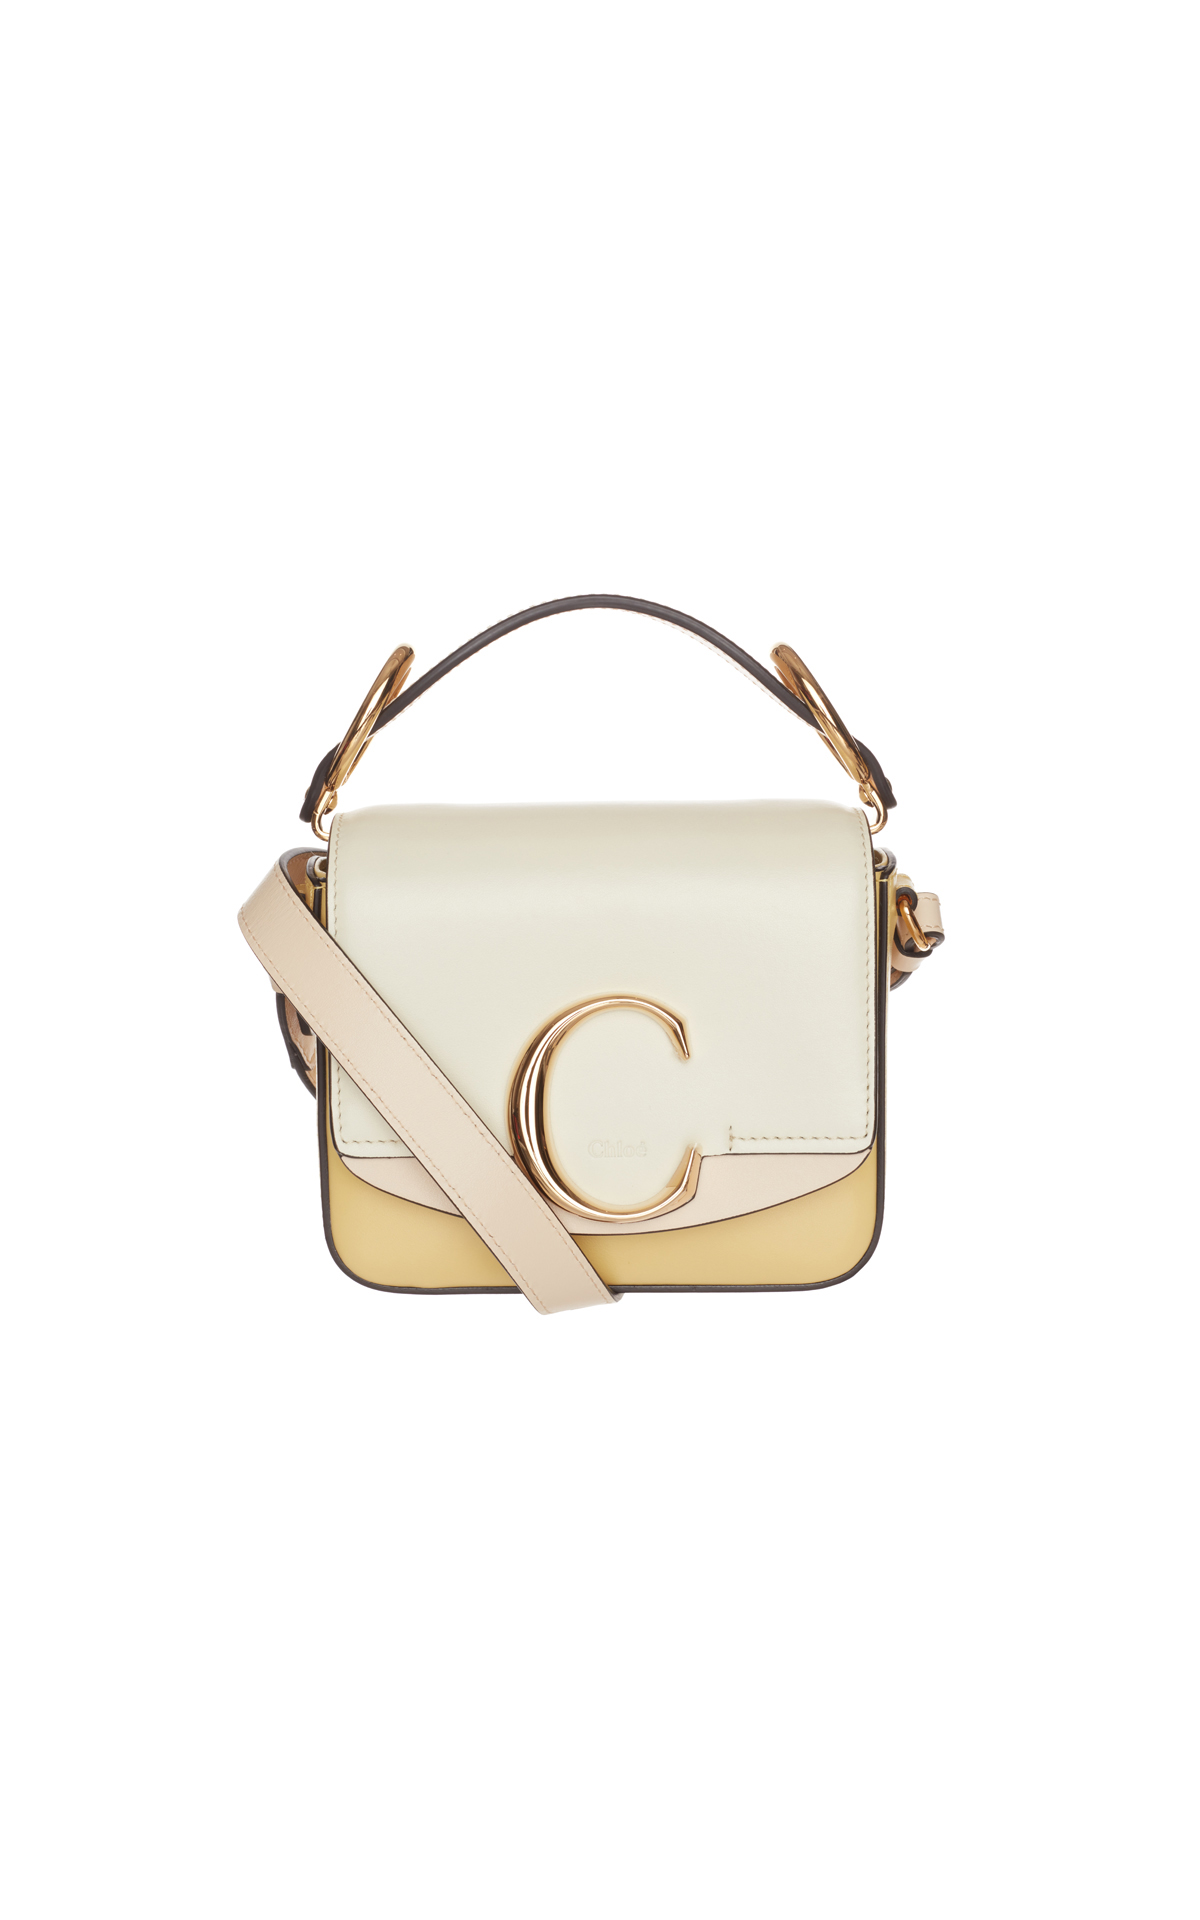 La Vallée Village Chloé Tess bag